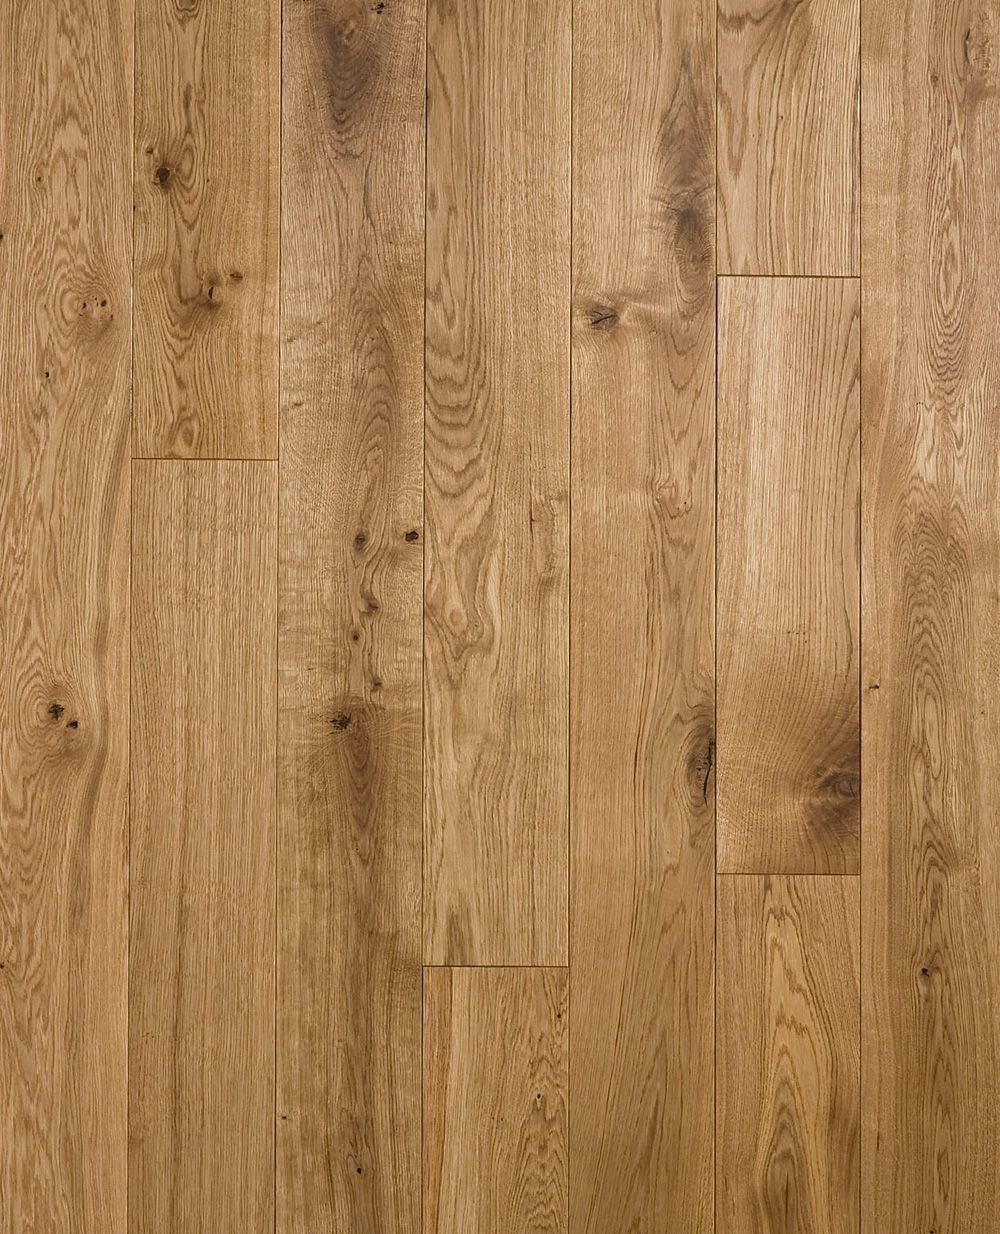 Oak Wood Flooring - Oak Wood Flooring Texture - Oak Wood Flooring - Oak Wood Flooring Texture Apt#1 Pinterest